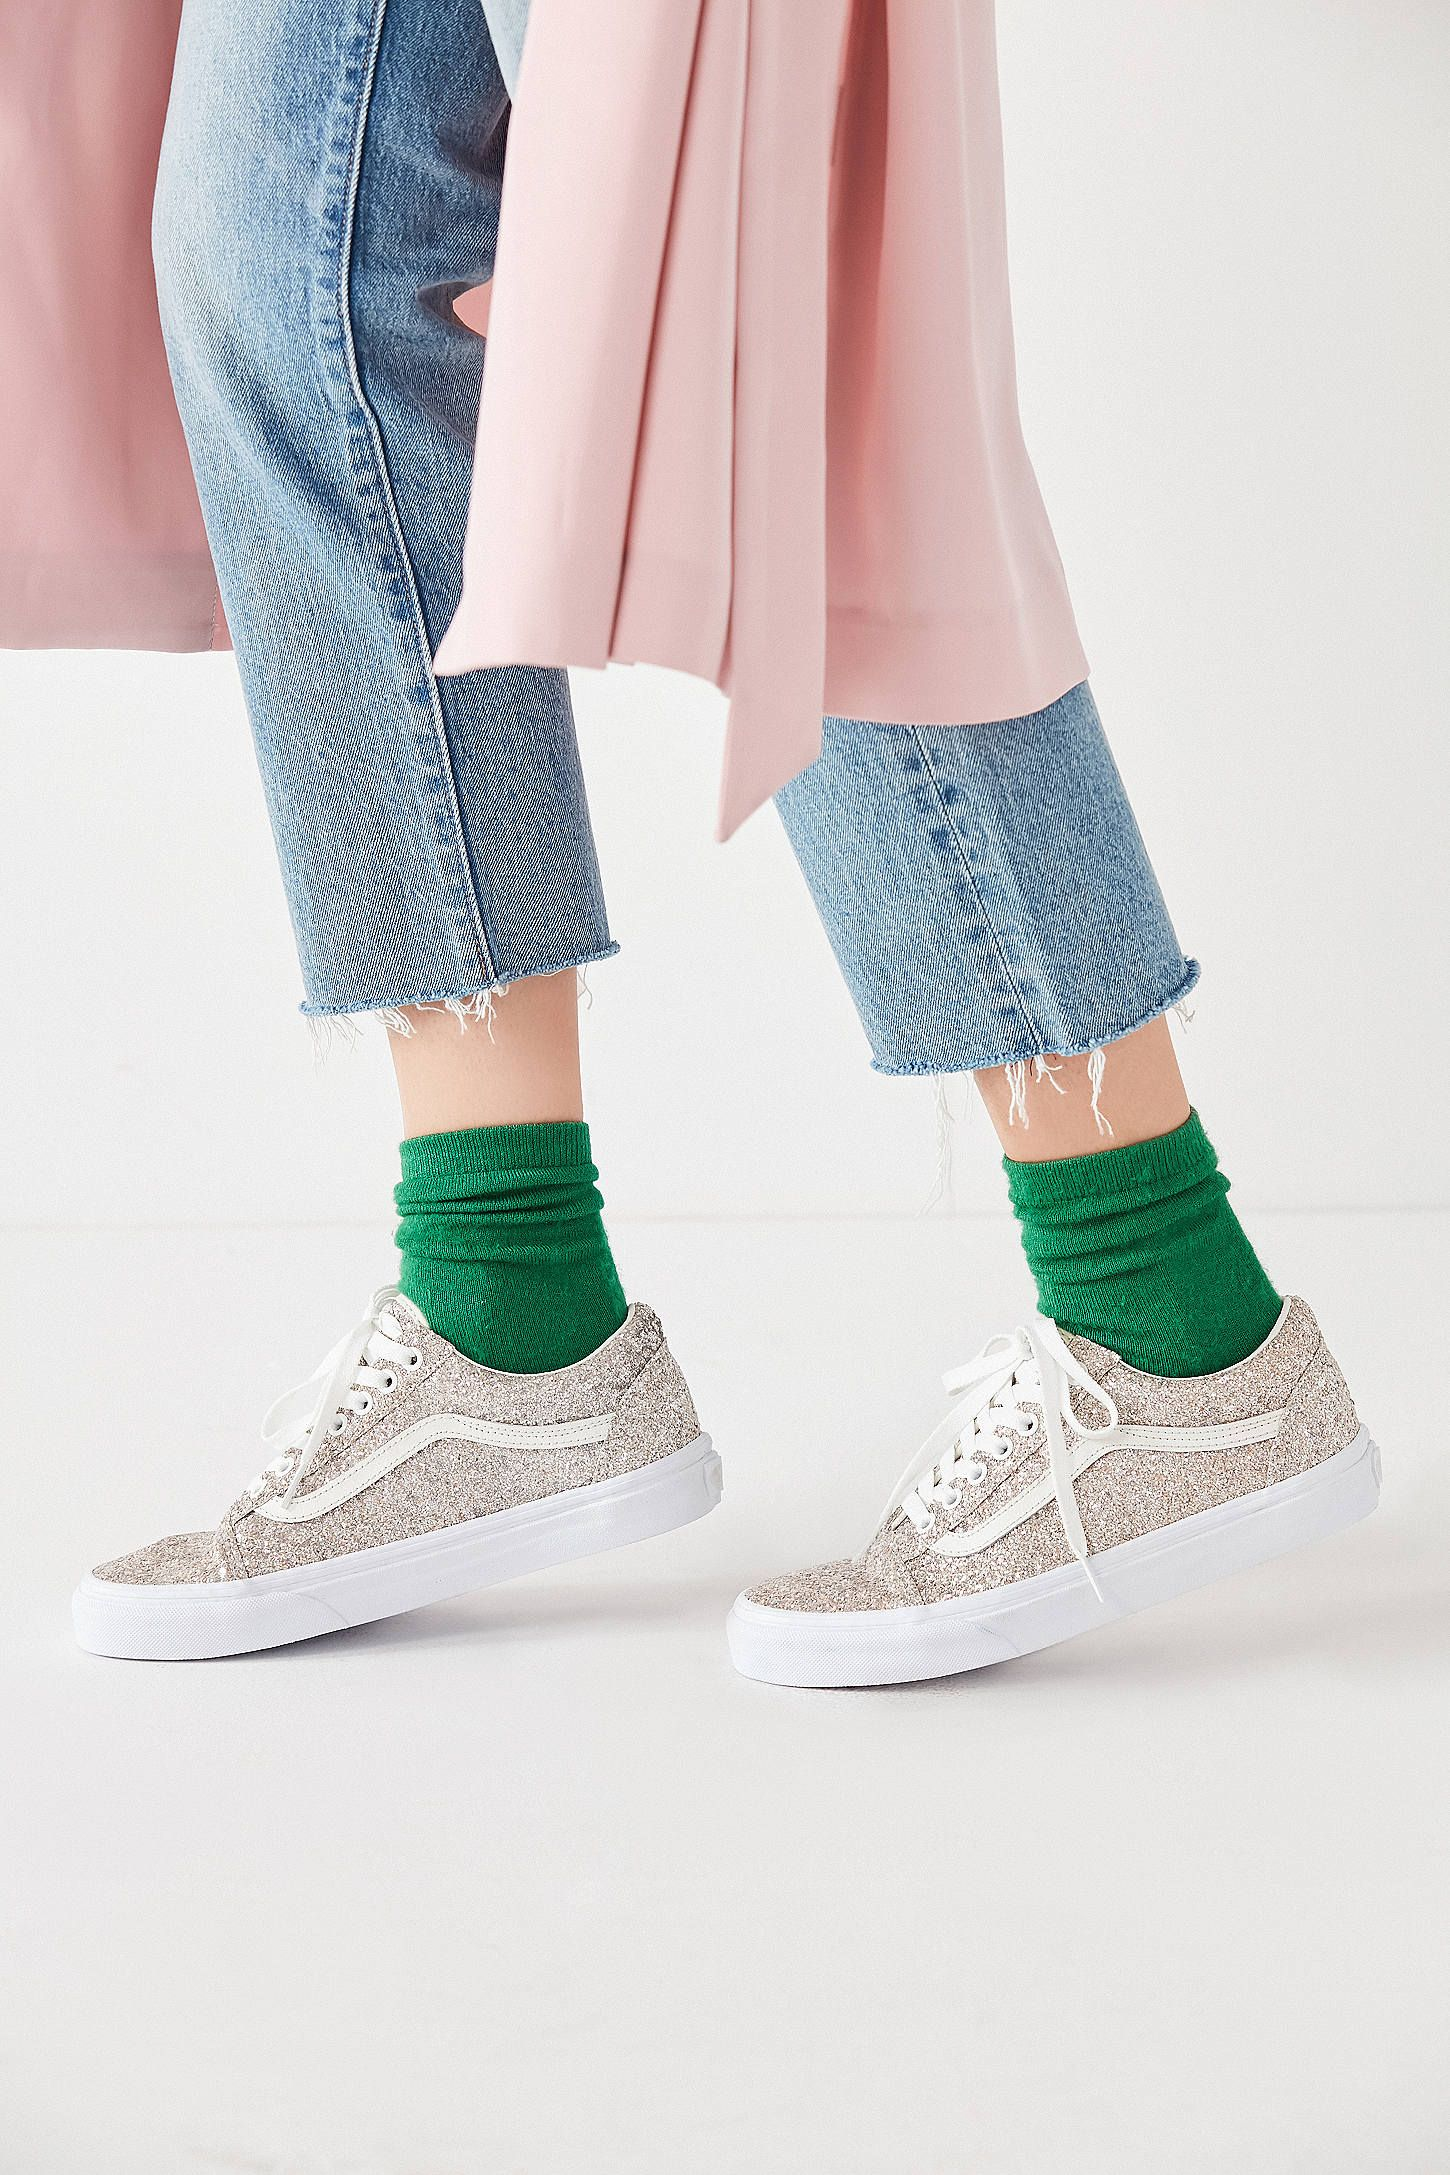 Shop Vans Chunky Glitter Old Skool Sneaker at Urban Outfitters today. We  carry all the latest styles 55dda37b9